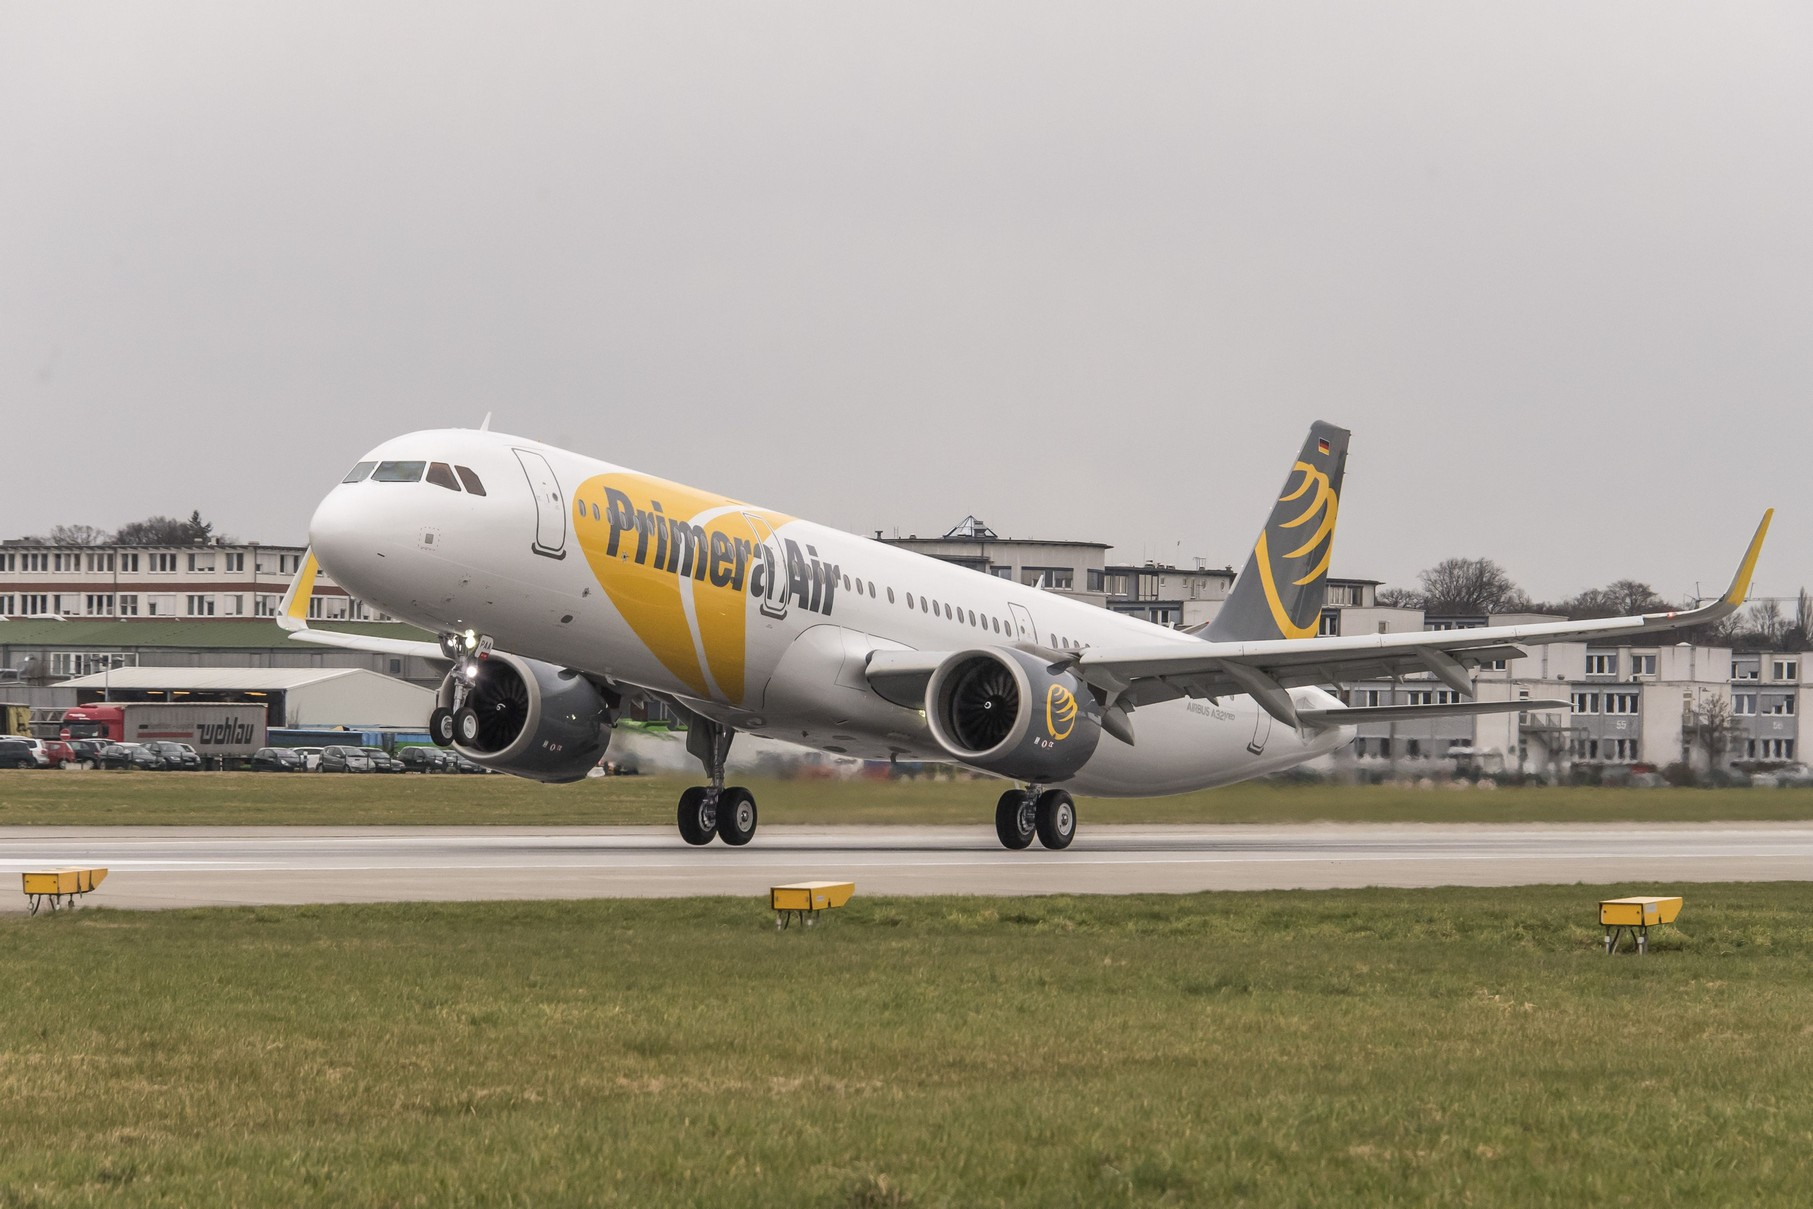 Primera Air, Airbus, neo, A320neo, LR, long range, Eurpe, North America, transatlantic, airline, low-cost, long-haul, market